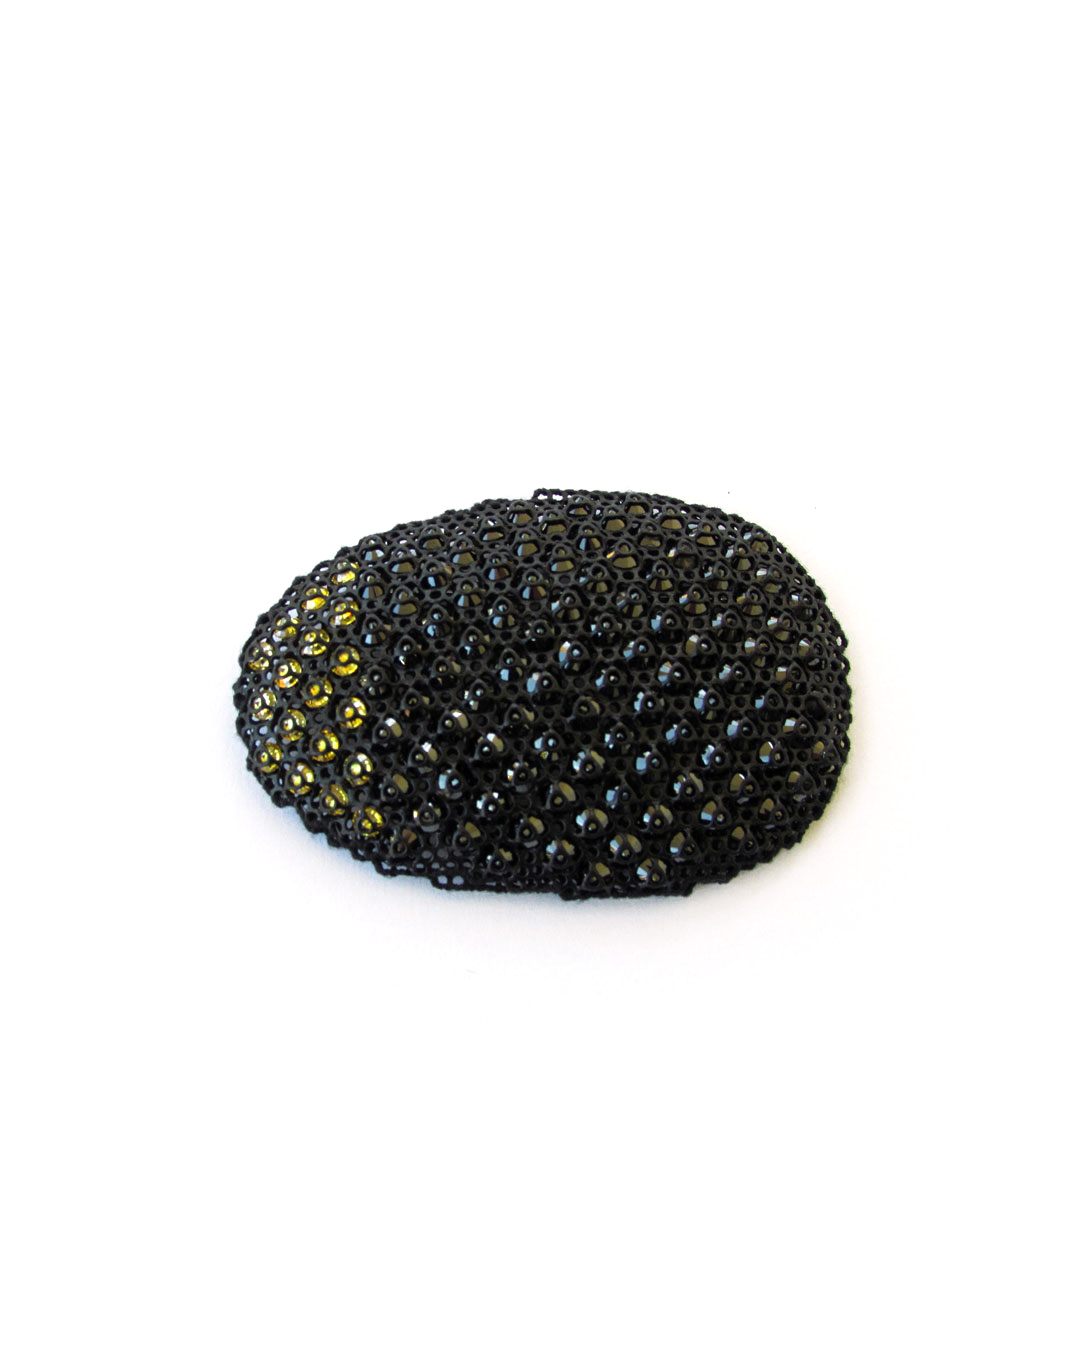 Dana Hakim, untitled, 2016, brooch; iron net, zircon, thread, paint, 85 x 55 x 15 mm, €2300